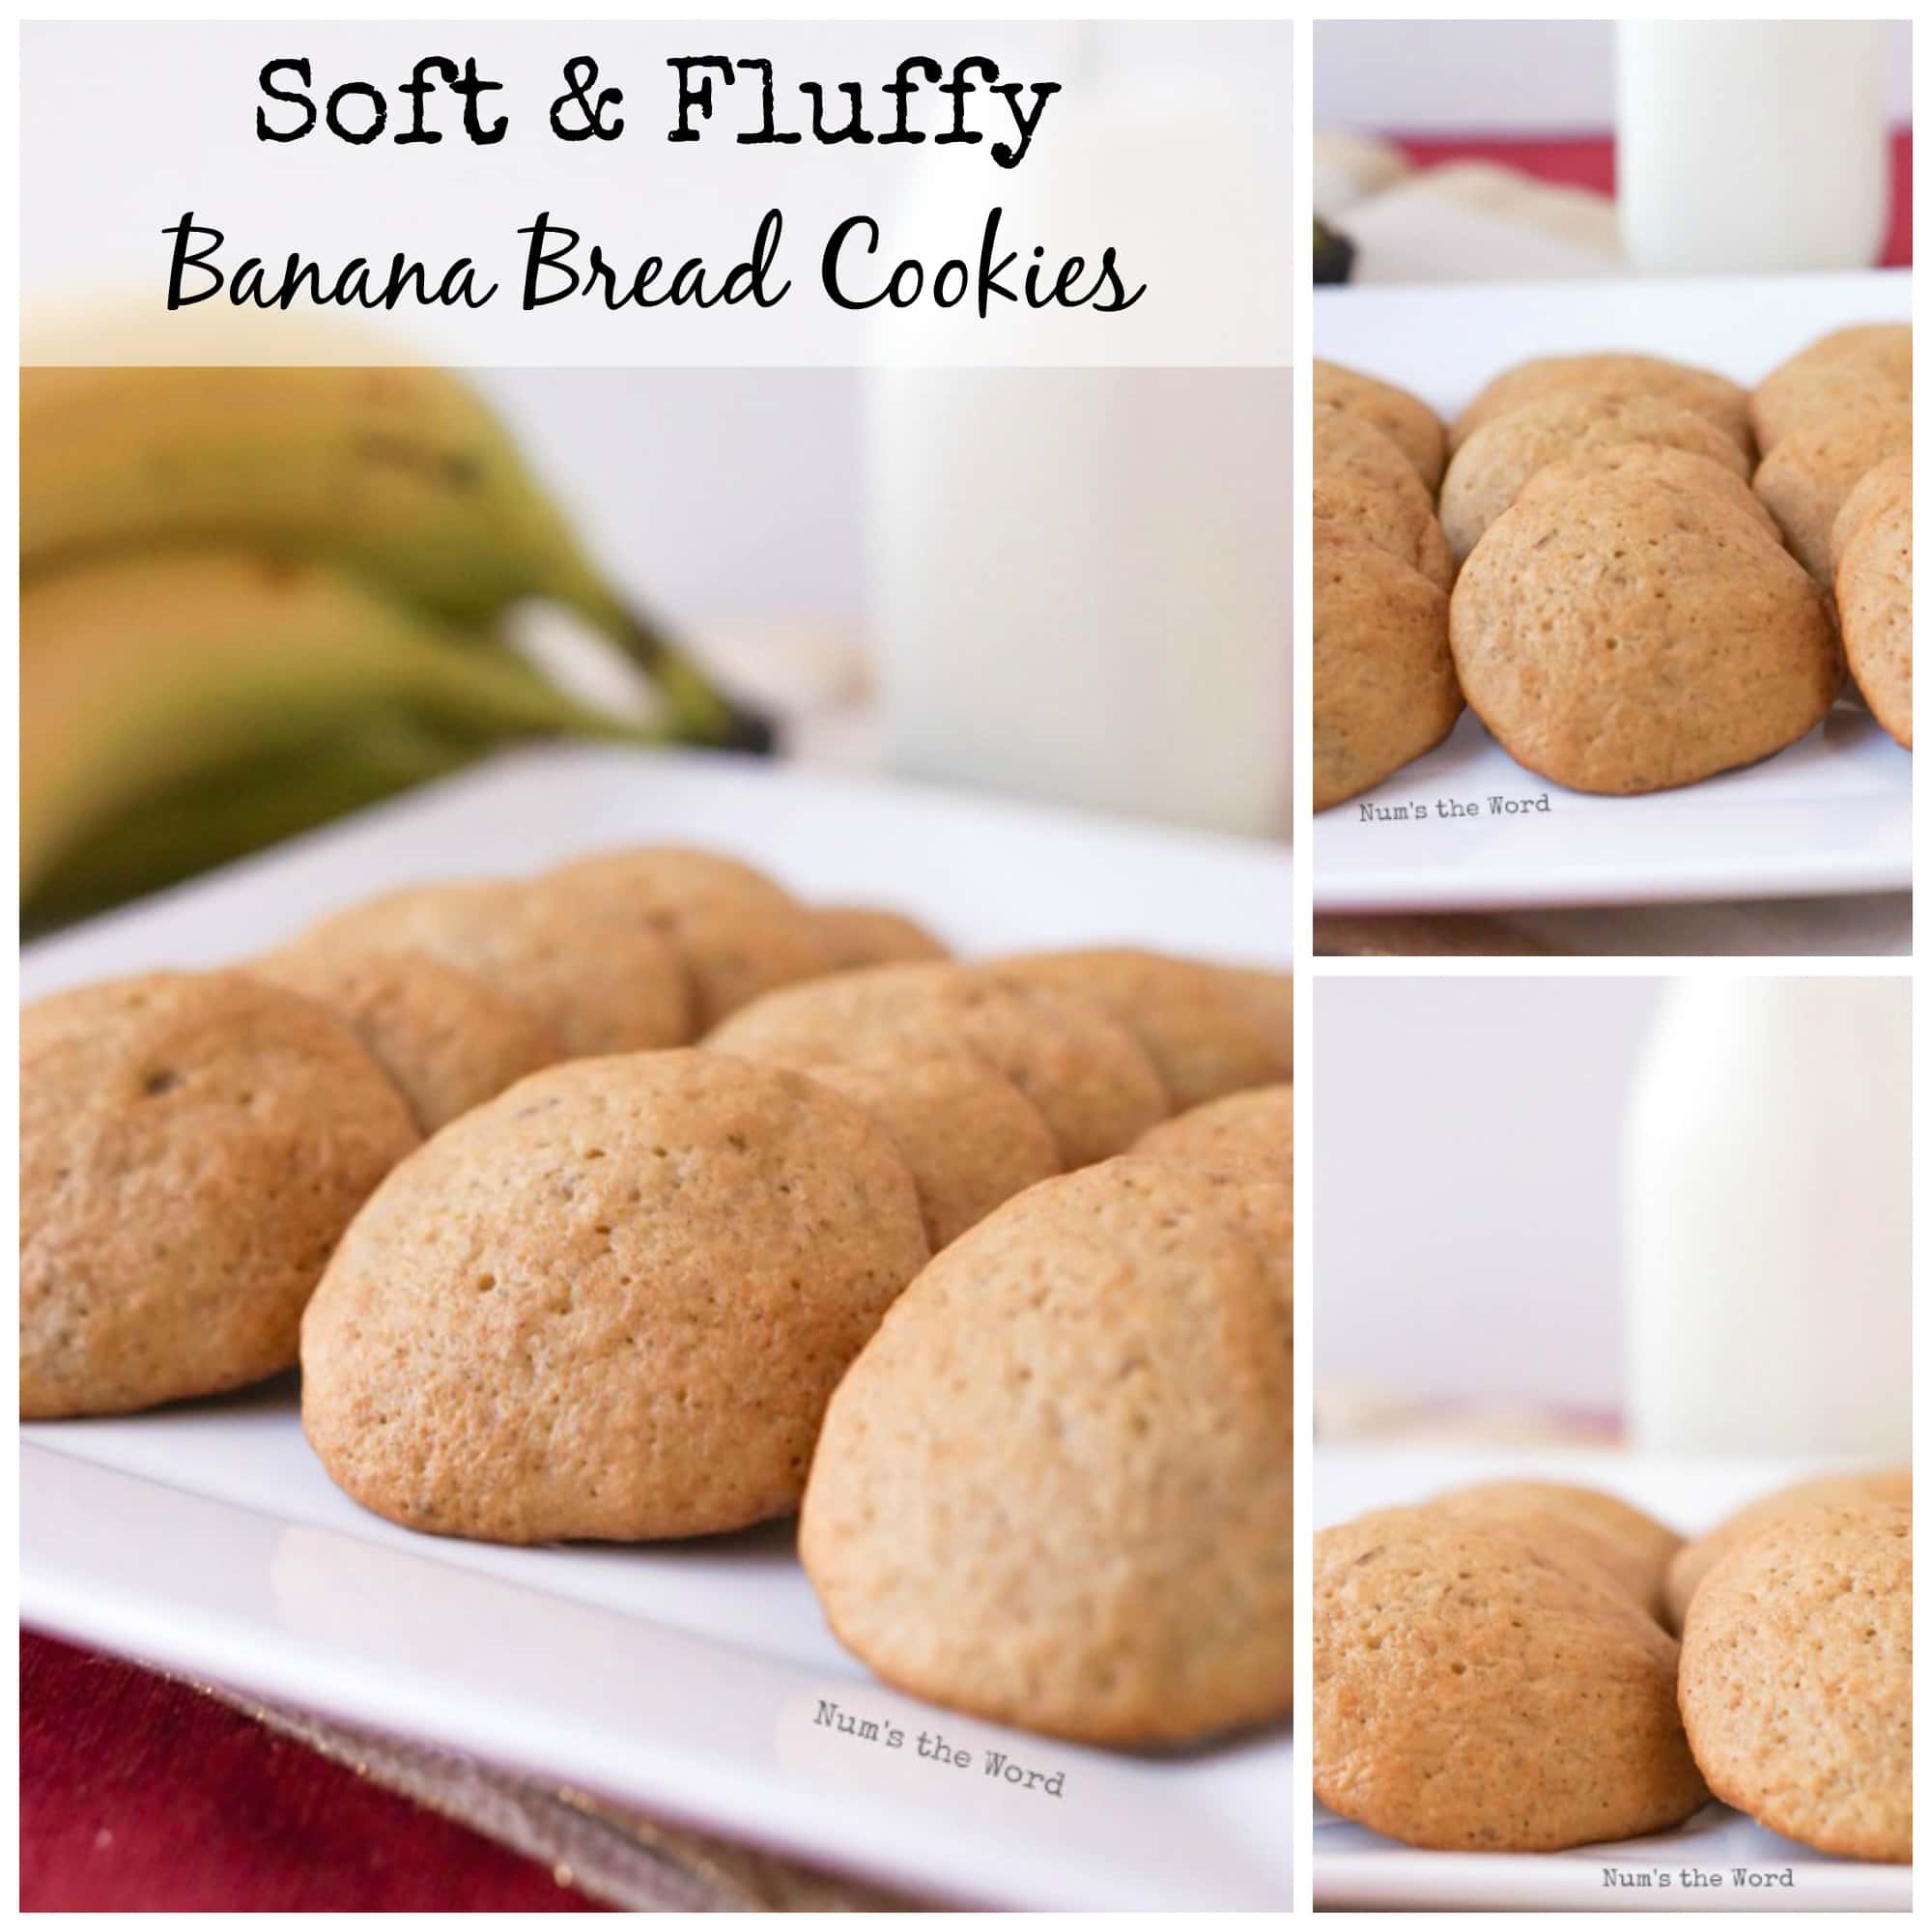 Soft & Chewy Banana Bread Cookies - Facebook collage of photos